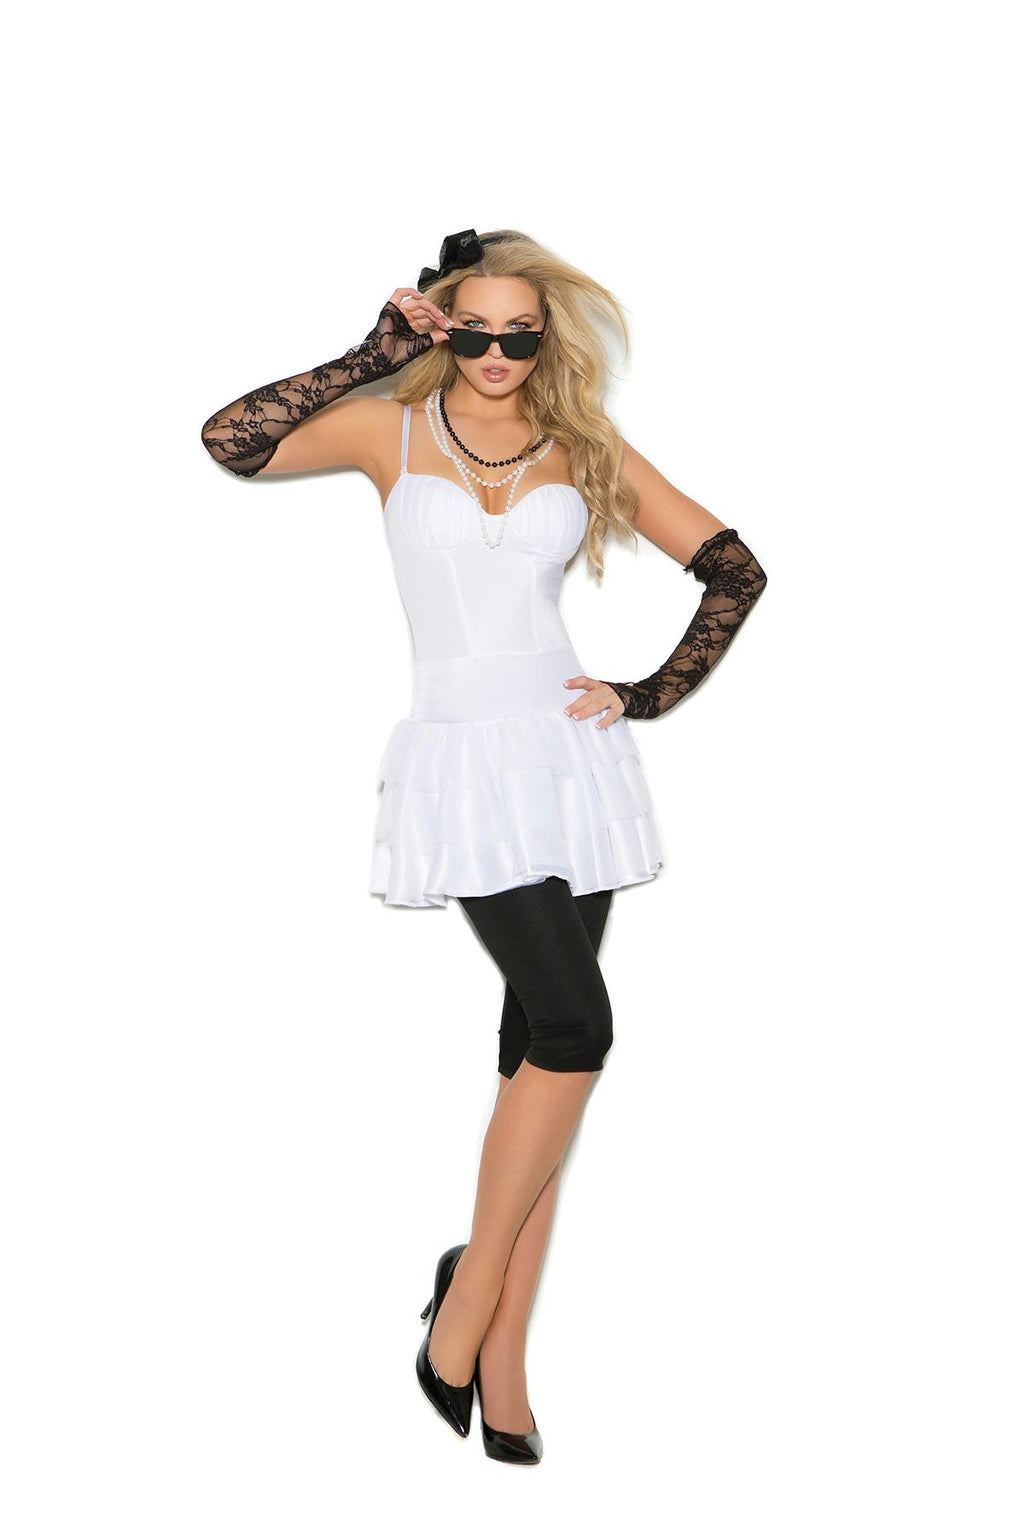 Rock Star - 6 pc. costume includes dress, leggings, lace gloves, pearl necklace, hair piece and sunglasses.